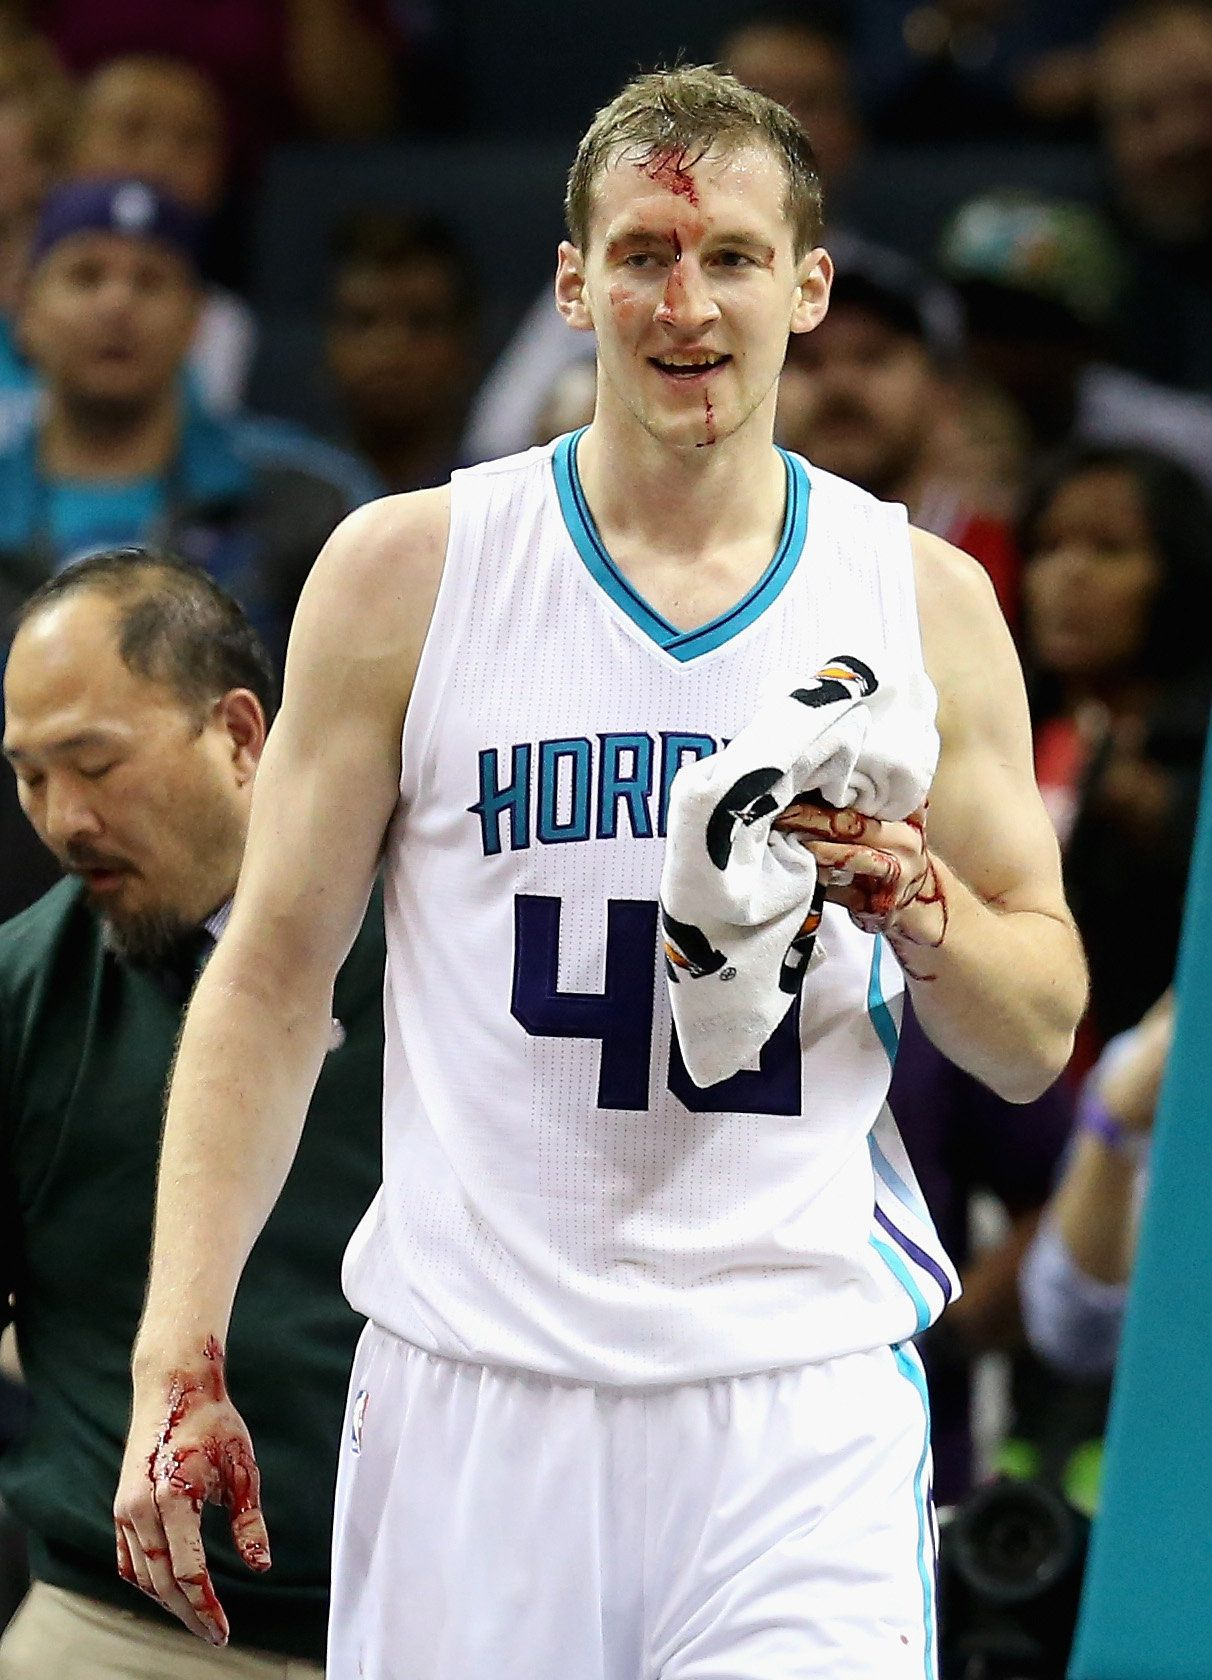 CHARLOTTE, NC - NOVEMBER 03:  Cody Zeller #40 of the Charlotte Hornets is hit in the face by Joakim Noah #13 of the Chicago Bulls during their game at Time Warner Cable Arena on November 3, 2015 in Charlotte, North Carolina. NOTE TO USER: User expressly acknowledges and agrees that, by downloading and or using this photograph, User is consenting to the terms and conditions of the Getty Images License Agreement.  (Photo by Streeter Lecka/Getty Images)